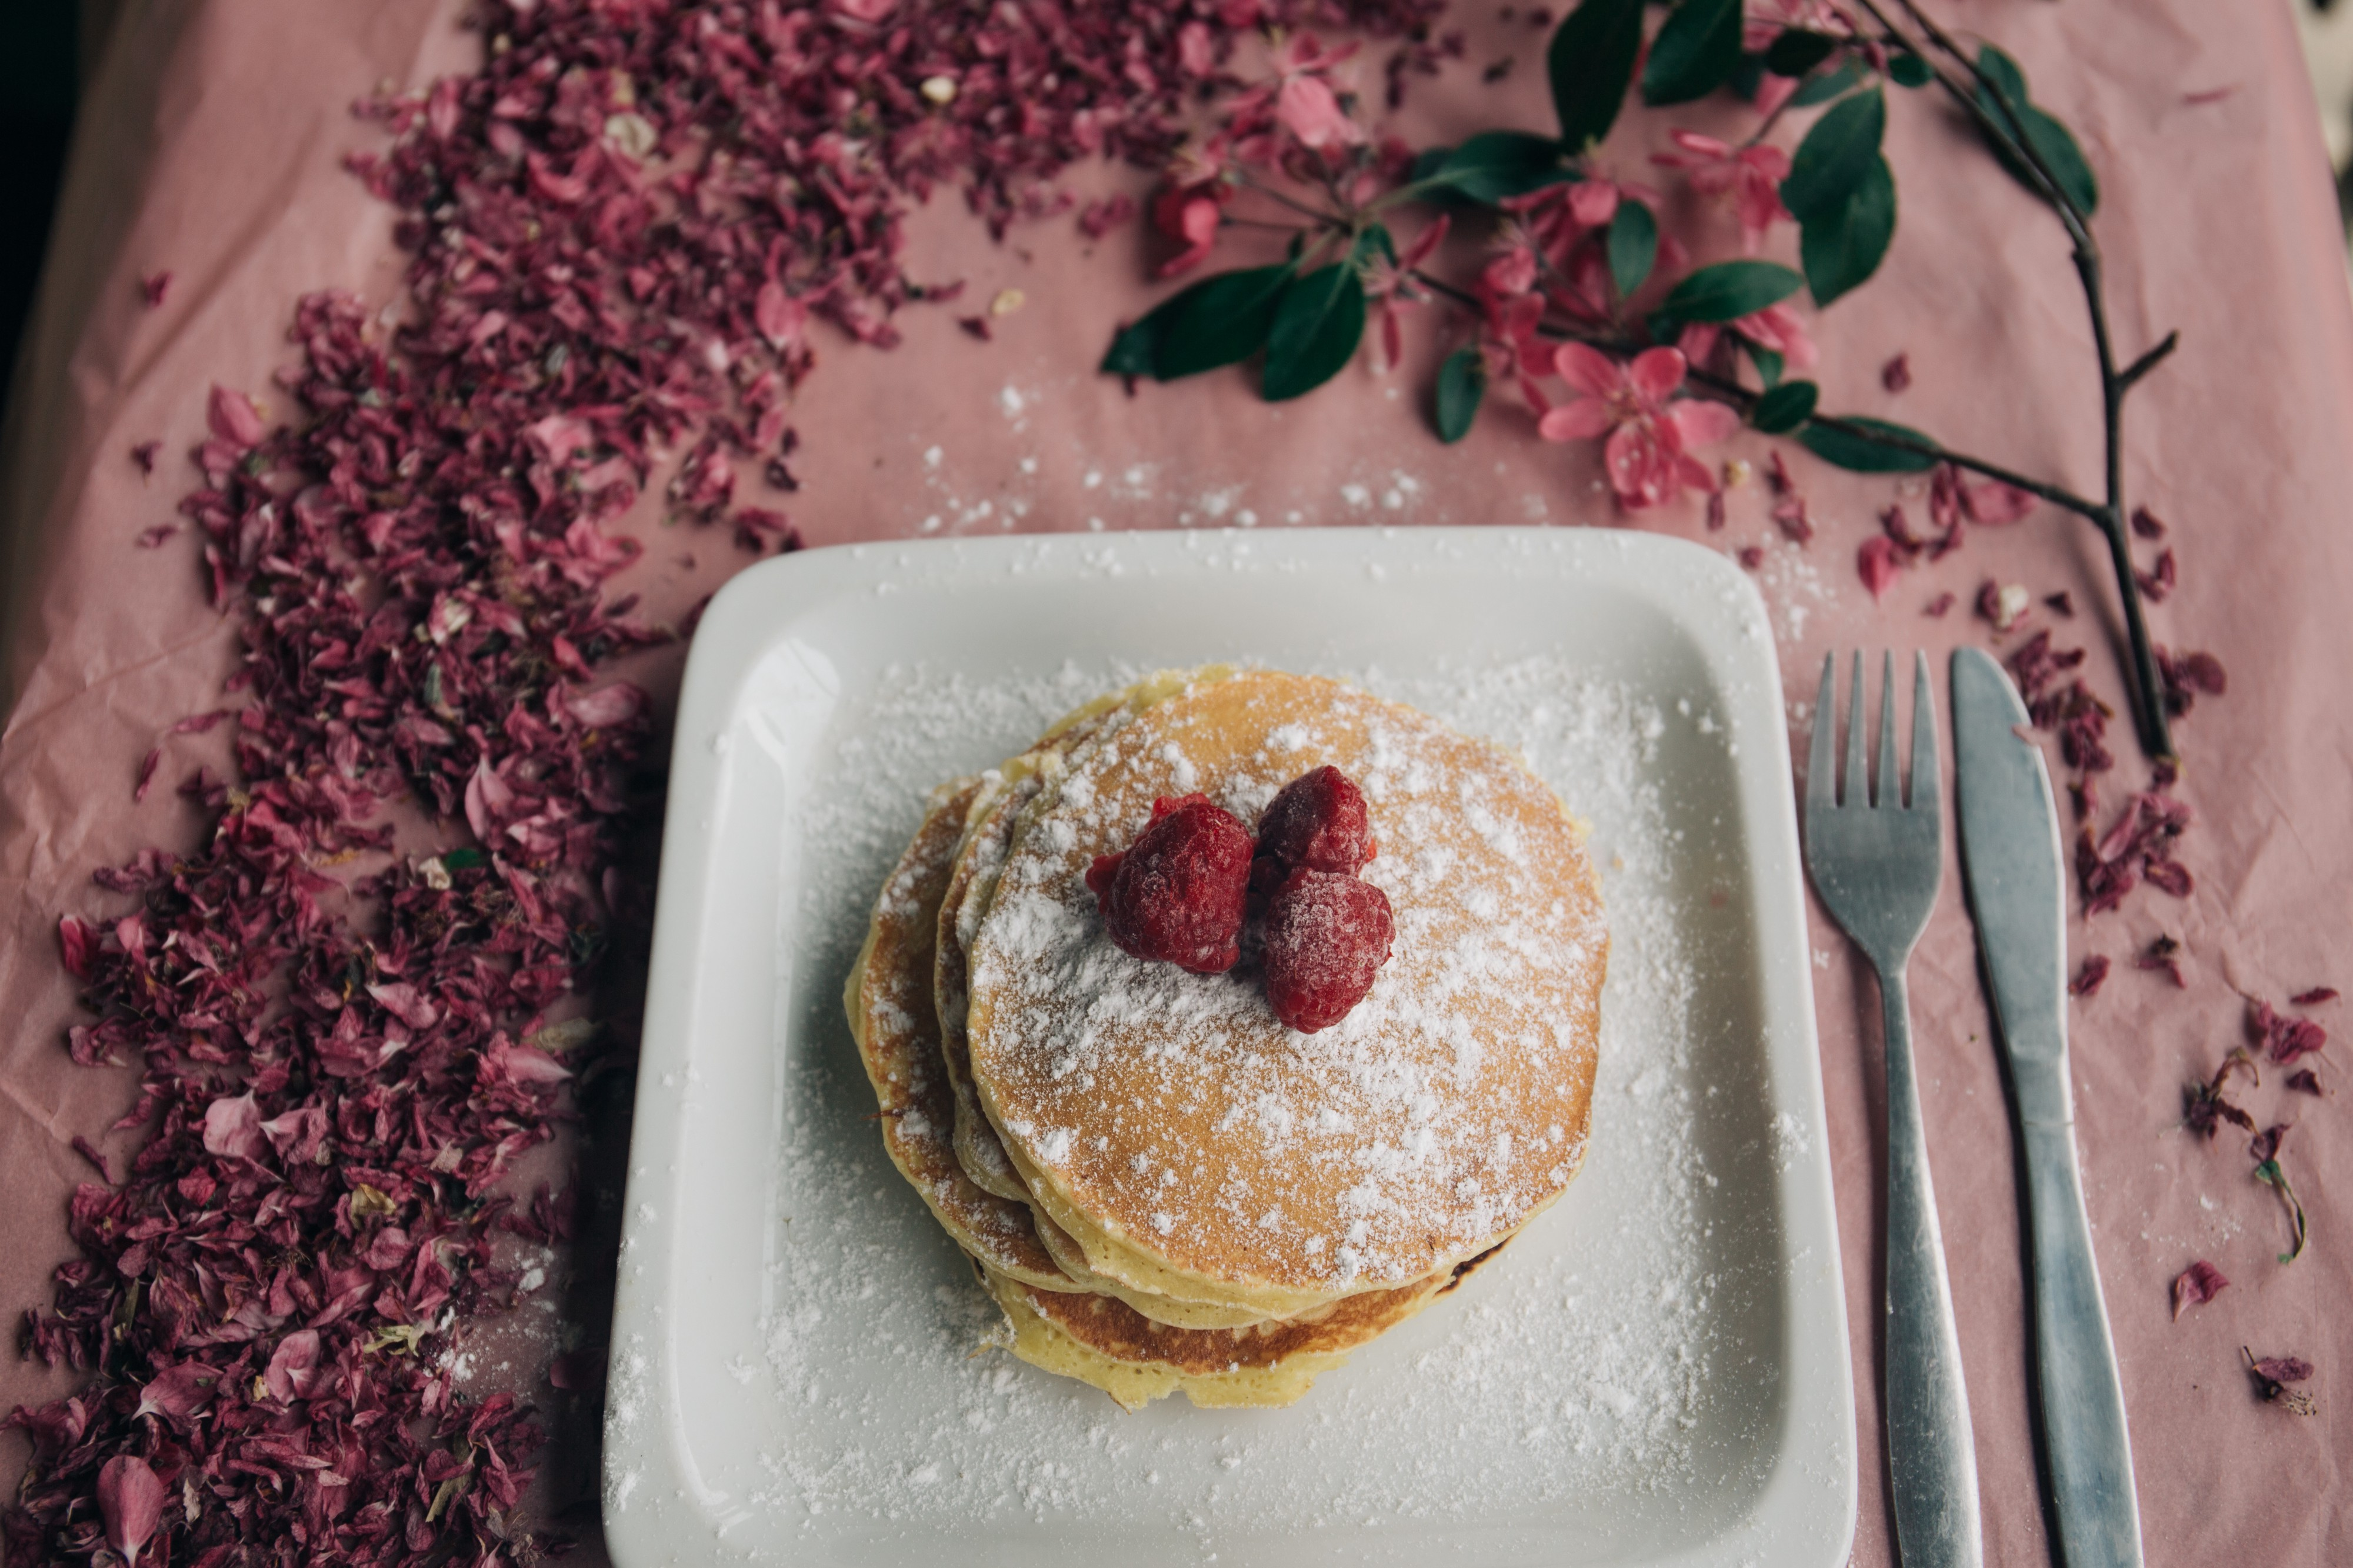 Buckwheat Pancakes Sweet Or Savoury By Dr Vedrana Hogqvist Tabor Boosted By Boost Thyroid App Medium